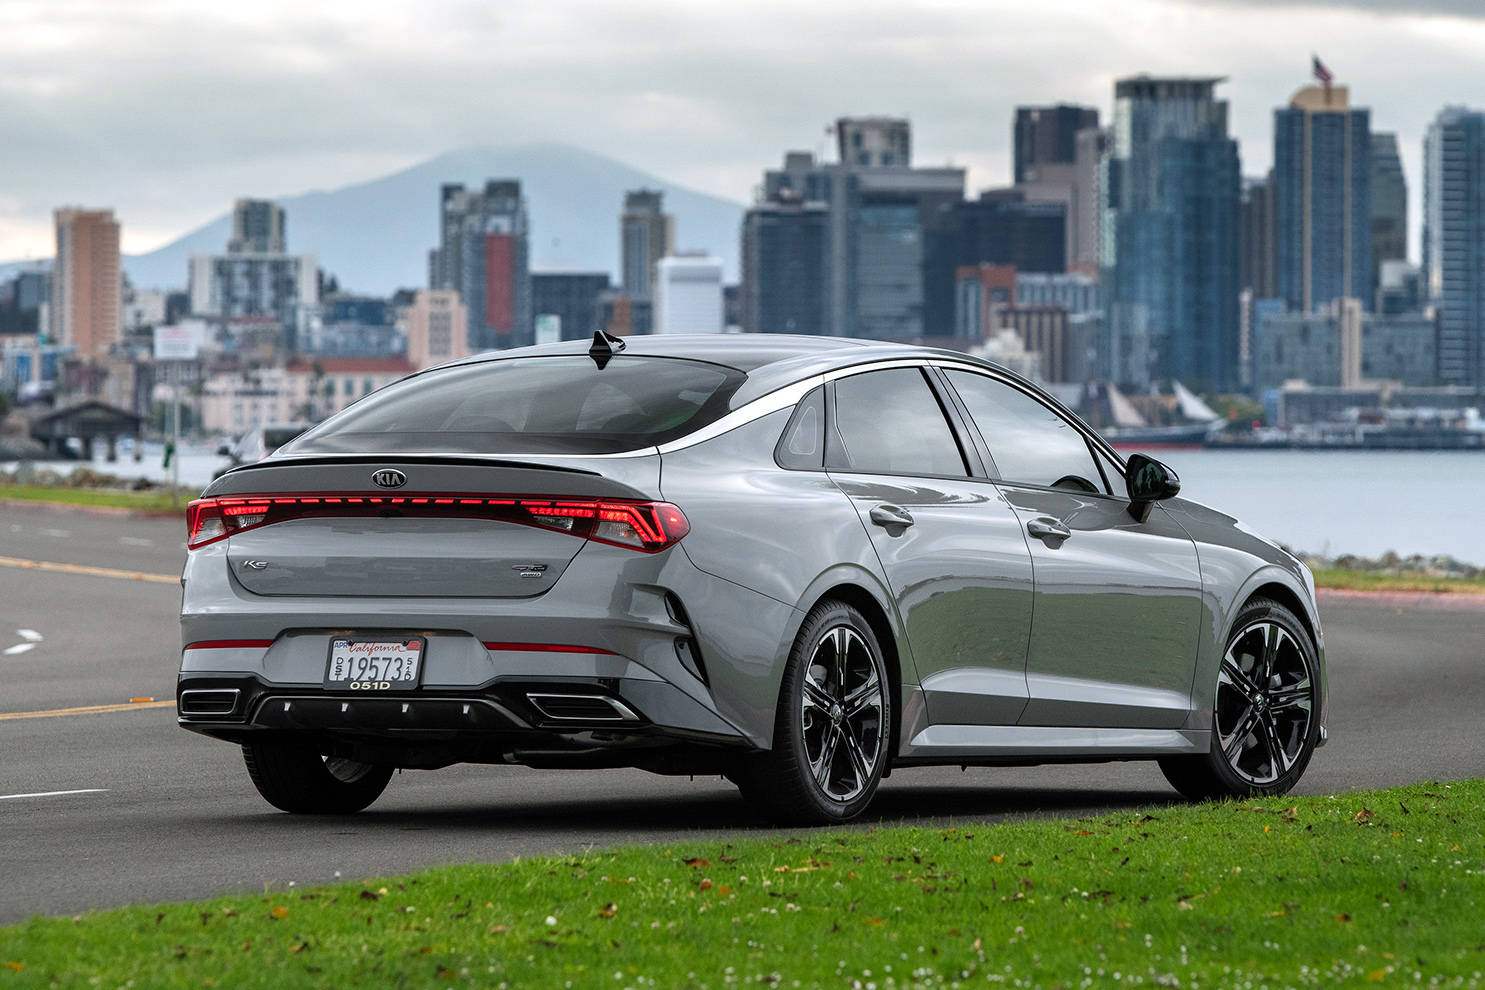 The K5's styling is highlighted by a band of trim that extends above the front door glass, wrapping around the base of the rear window. The full-width taillights are also quite striking. PHOTO: KIA